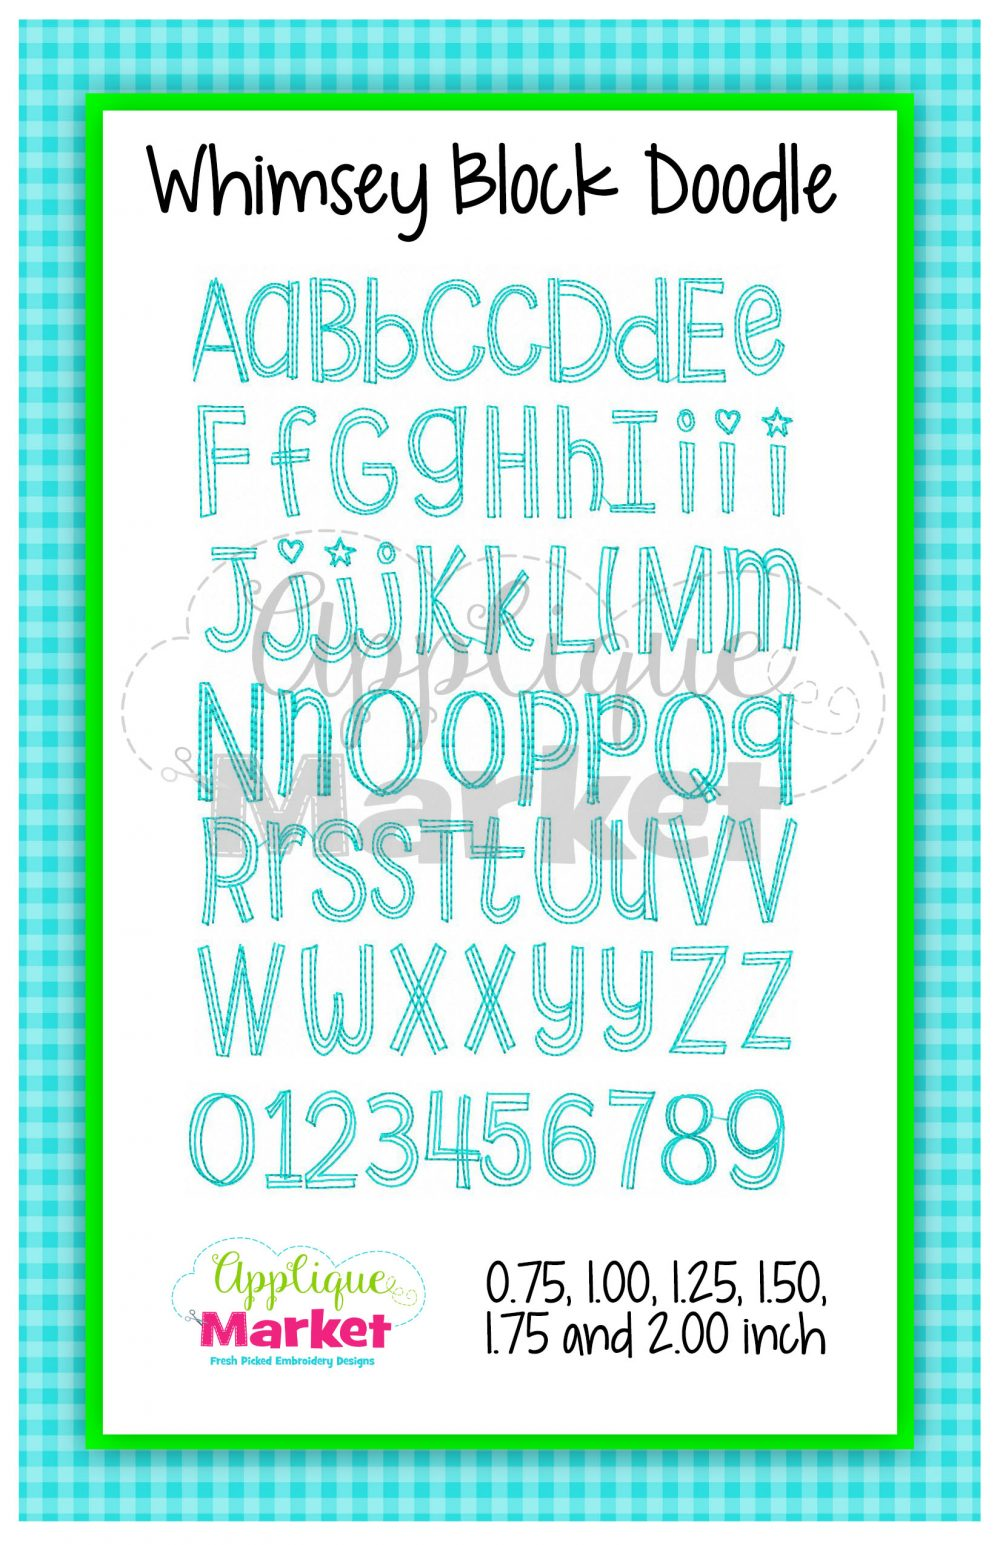 Whimsey Block Doodle Alphabet Embroidery Machine Font